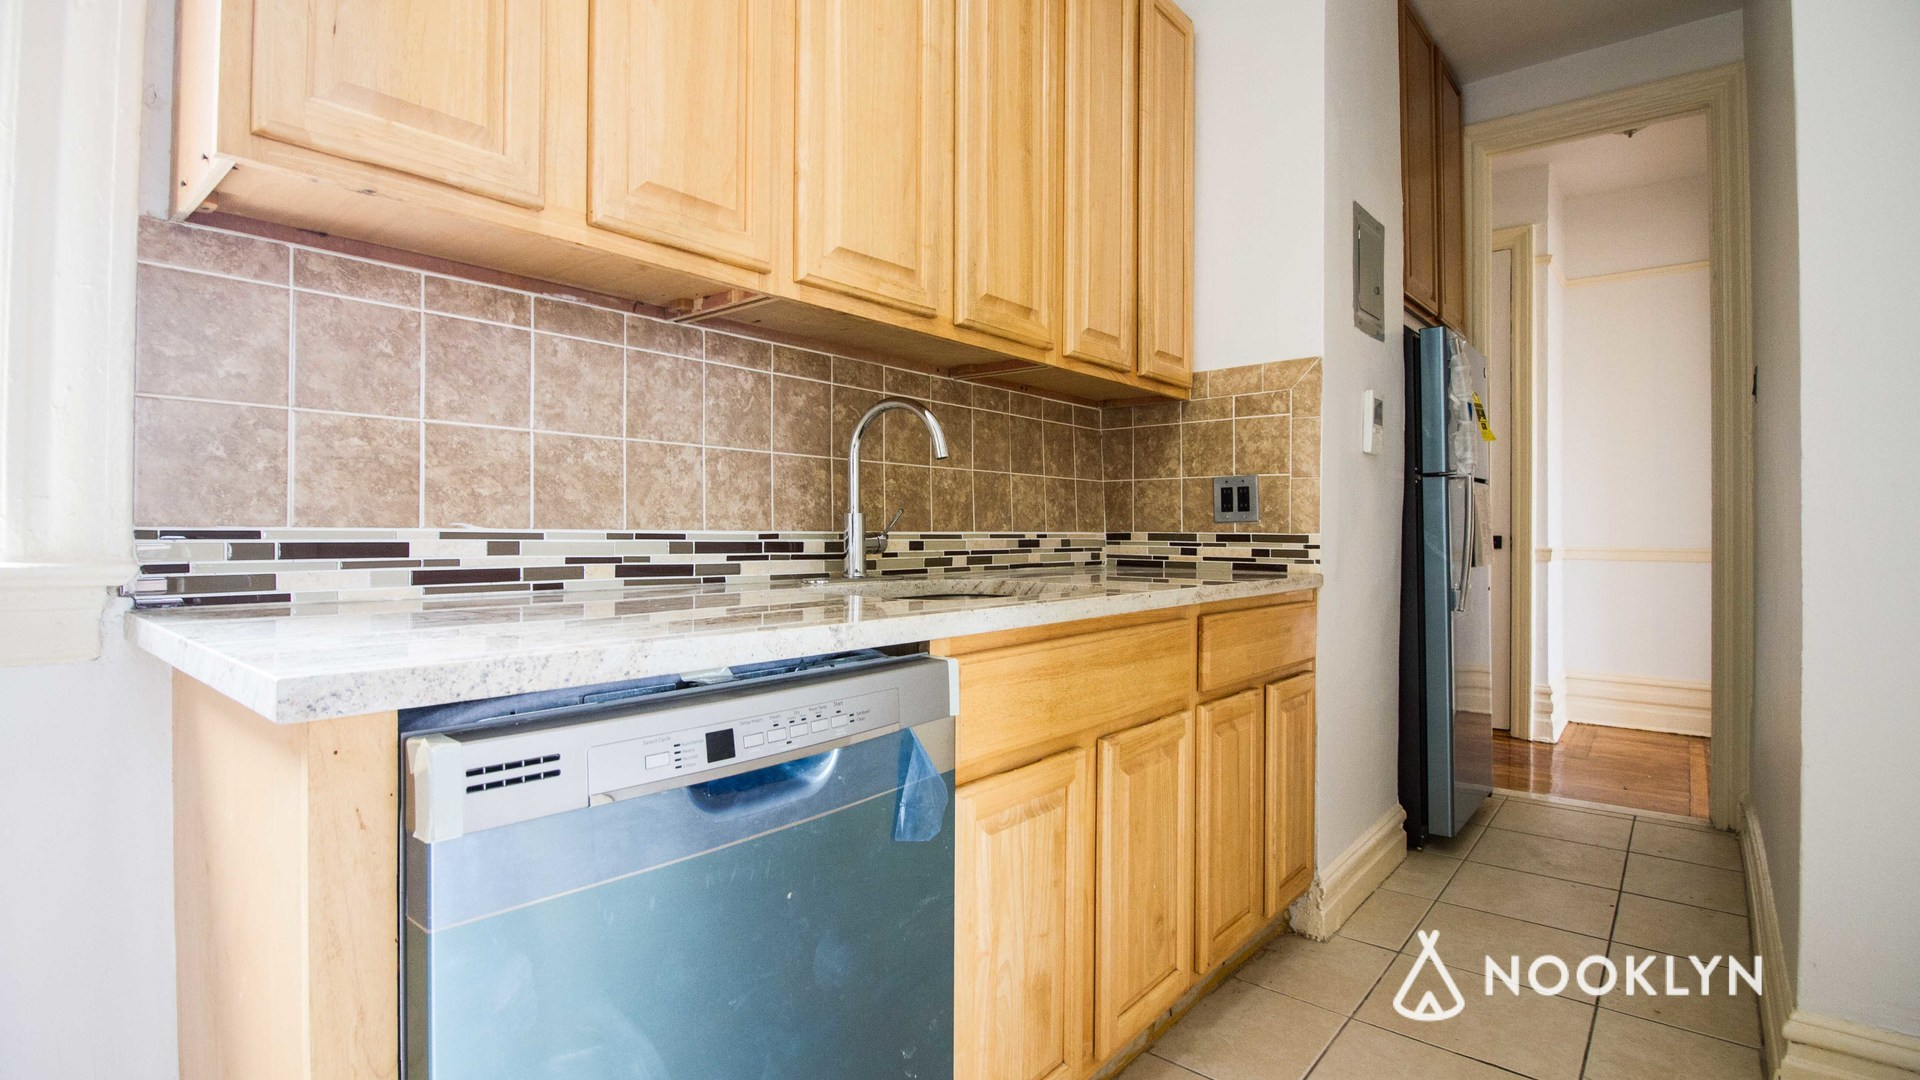 A $3,300 apartment in Crown Heights, Brooklyn - Nooklyn